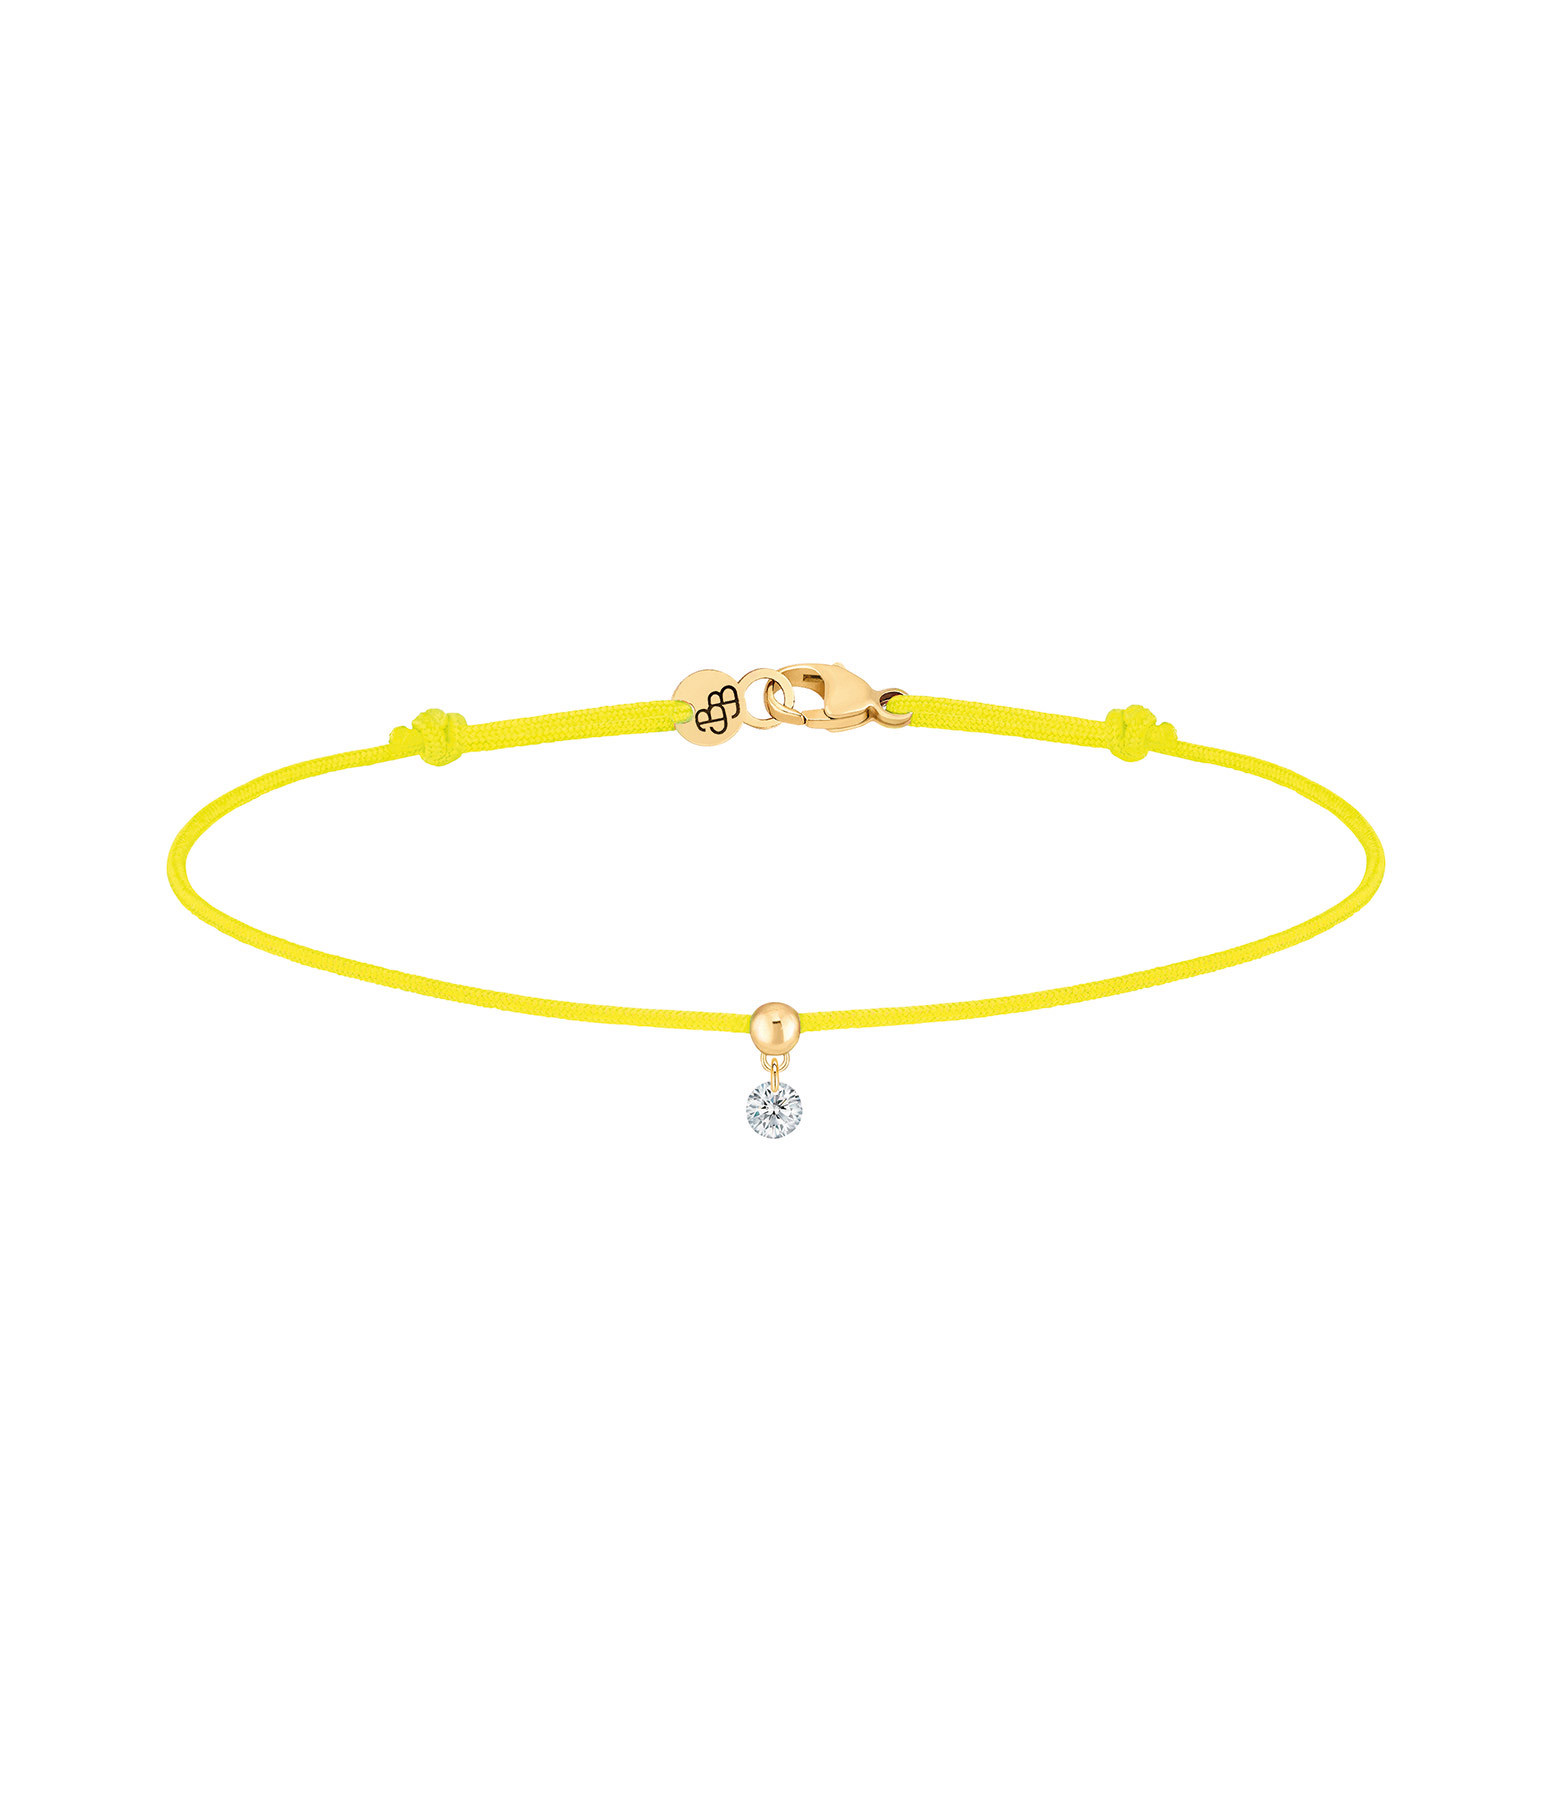 LA BRUNE & LA BLONDE - Bracelet BB Diamant Brillant Cordon Jaune Fluo Or Jaune